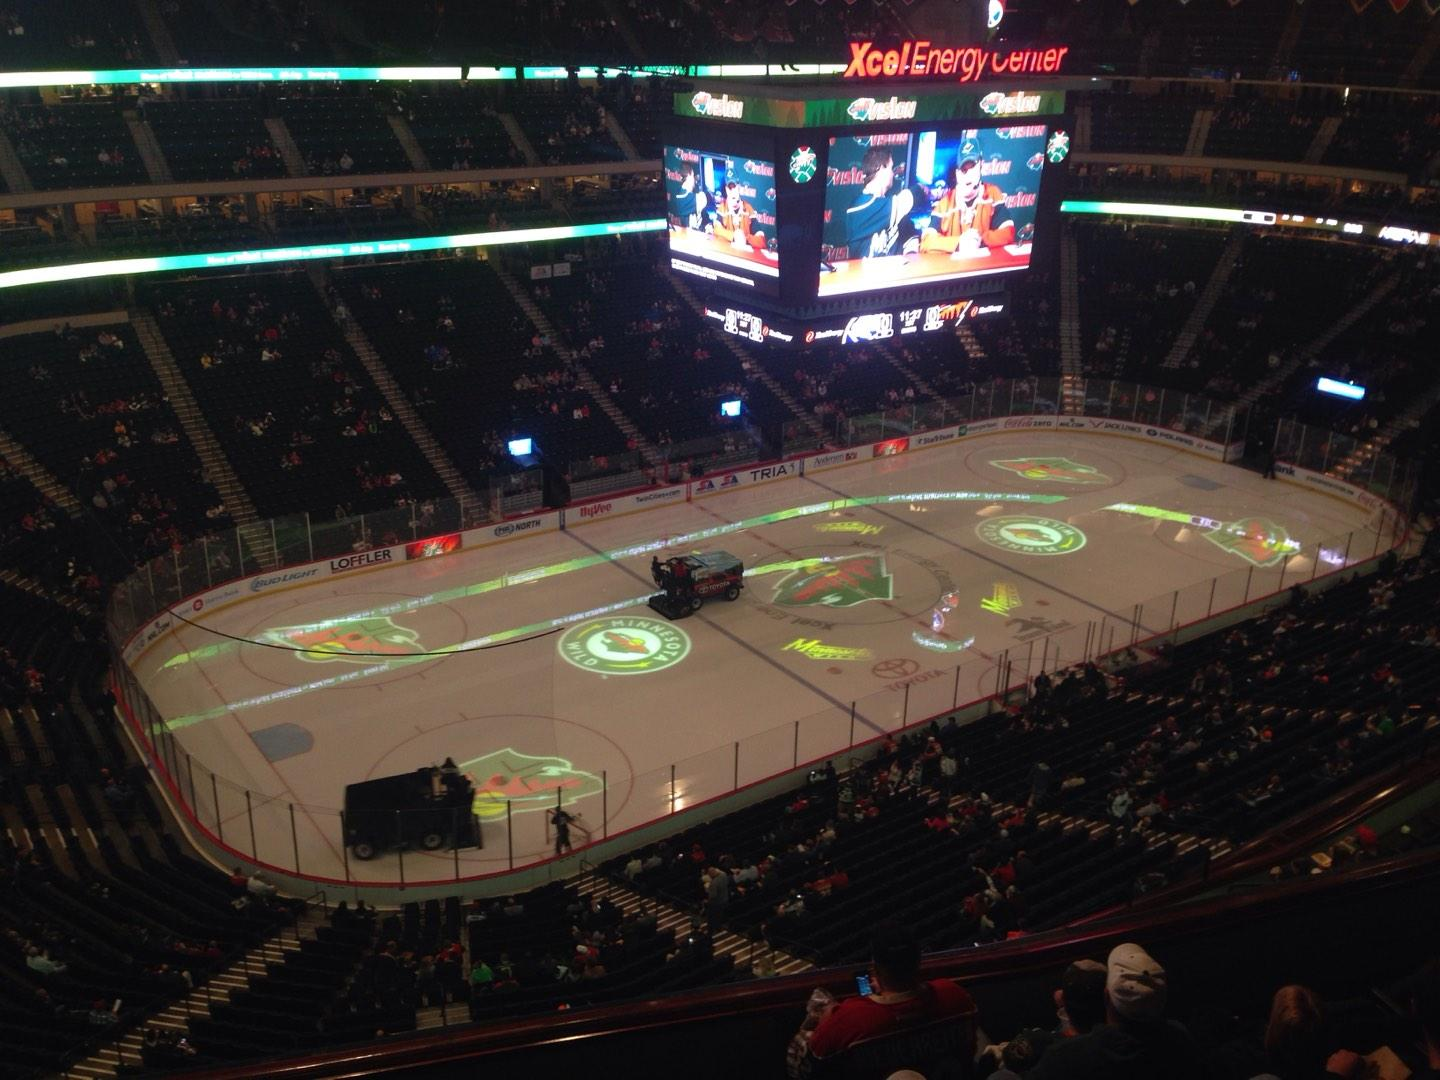 Xcel Energy Center Section 207 Row 6 Seat 22